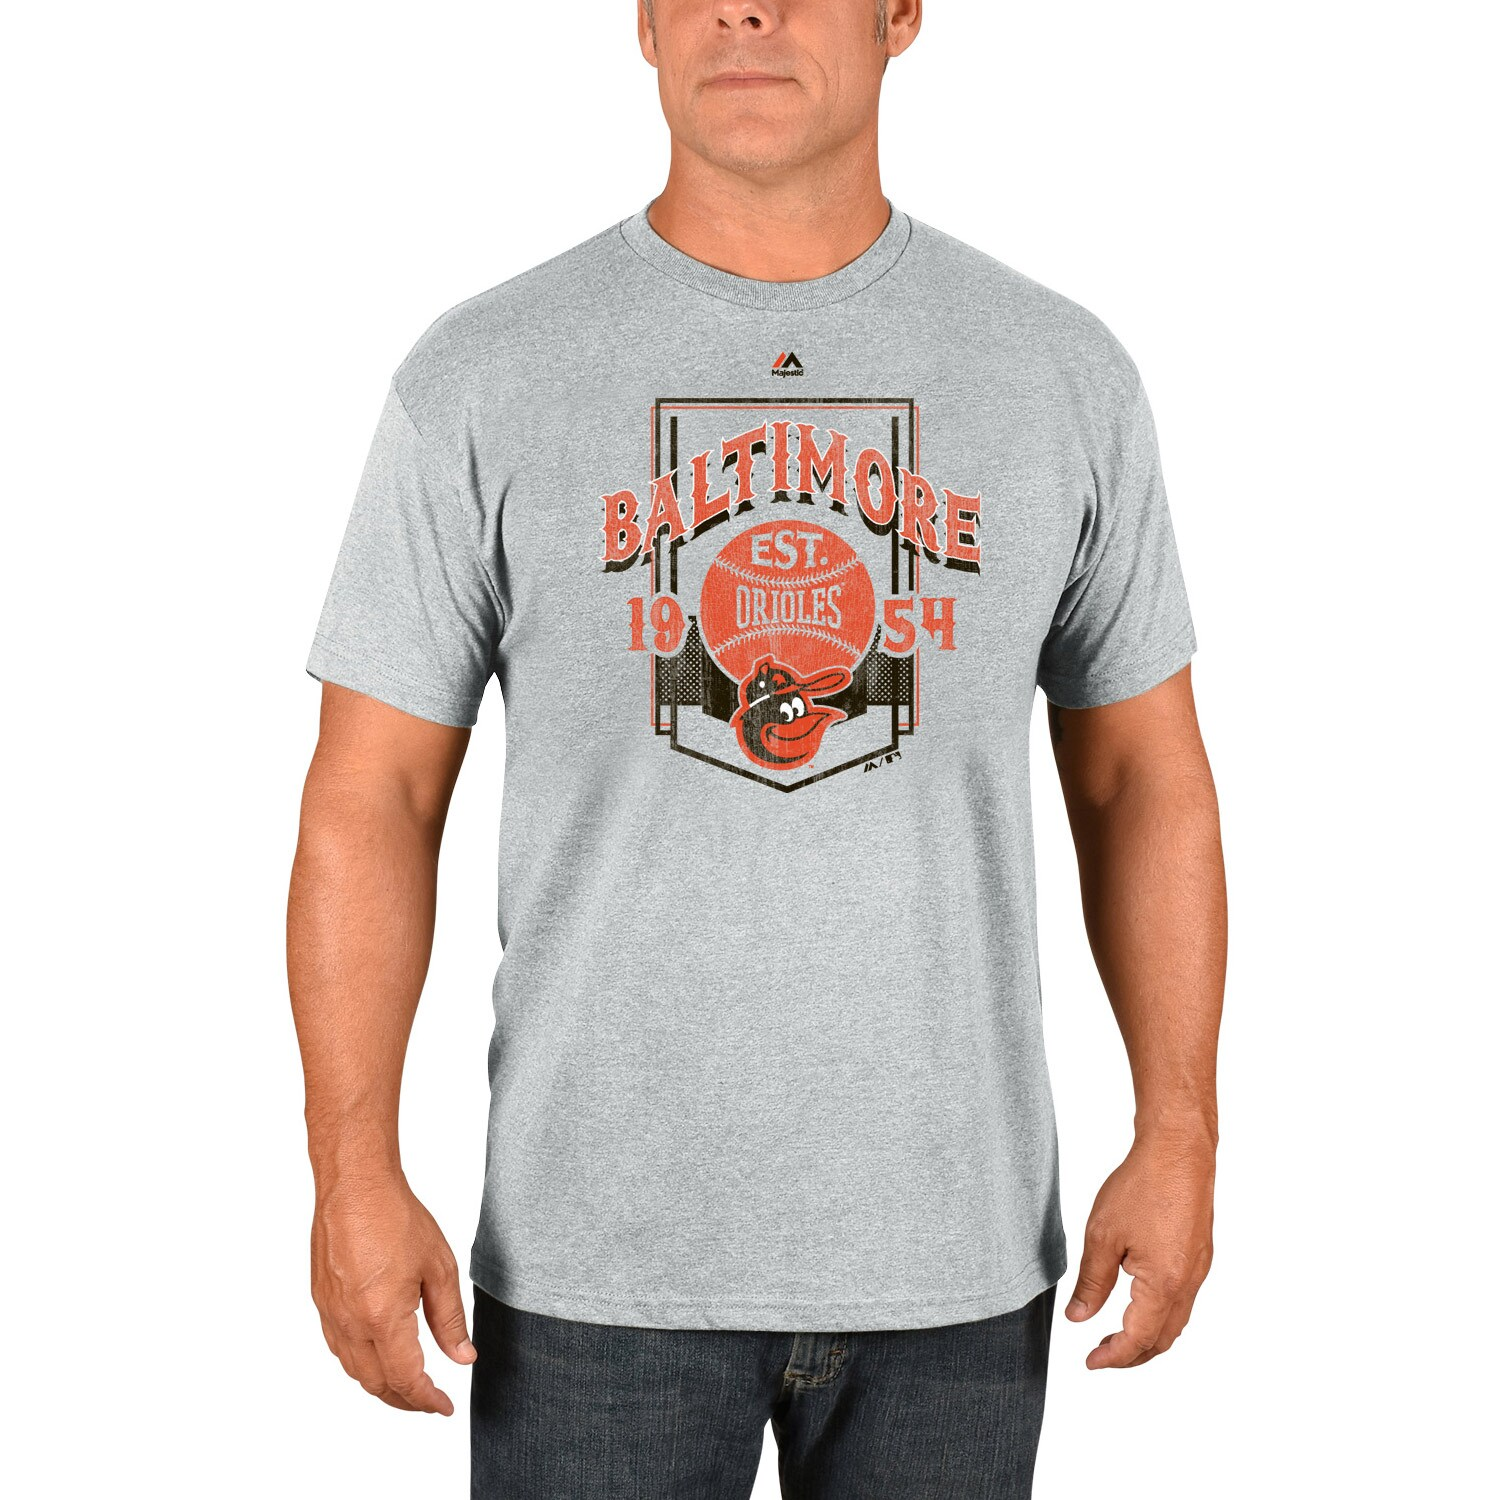 Baltimore Orioles Majestic Cooperstown Collection Vintage Style T-Shirt - Gray